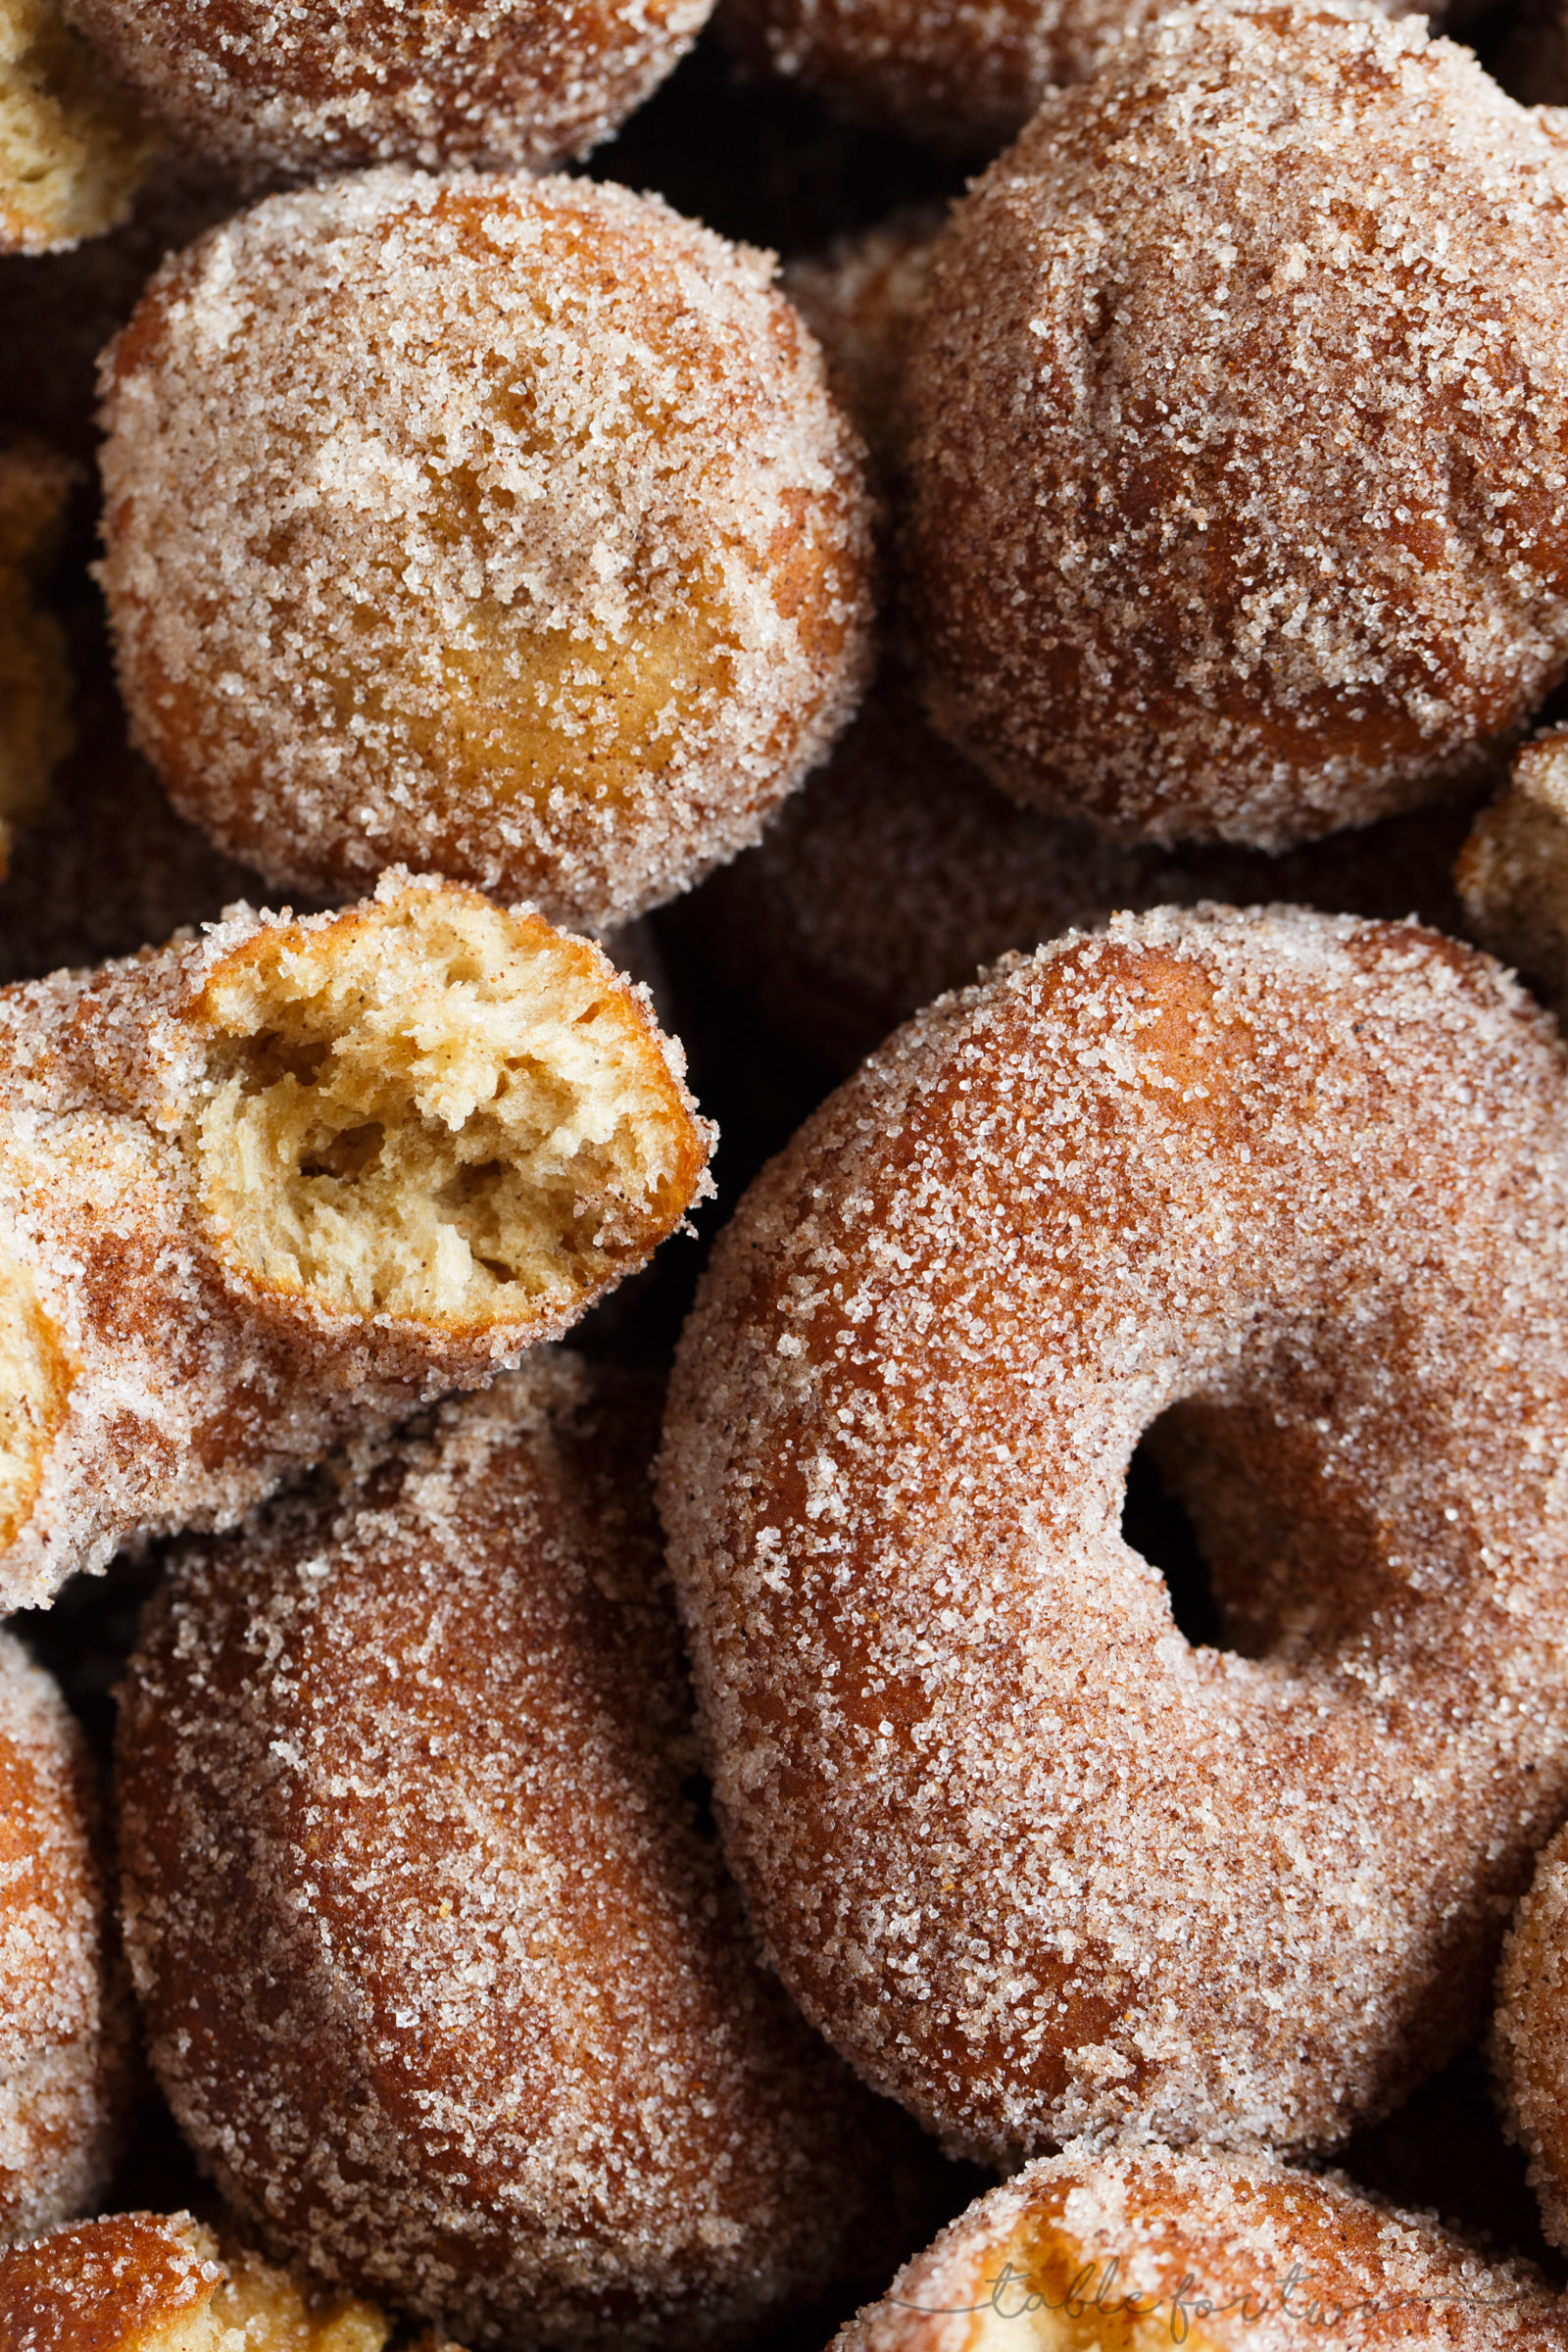 My idea of Fall is having a large plate of warm, fresh, homemade apple cider doughnuts with a cup of coffee in hand. This is the perfect cinnamon sugary treat full of apple cider flavor!